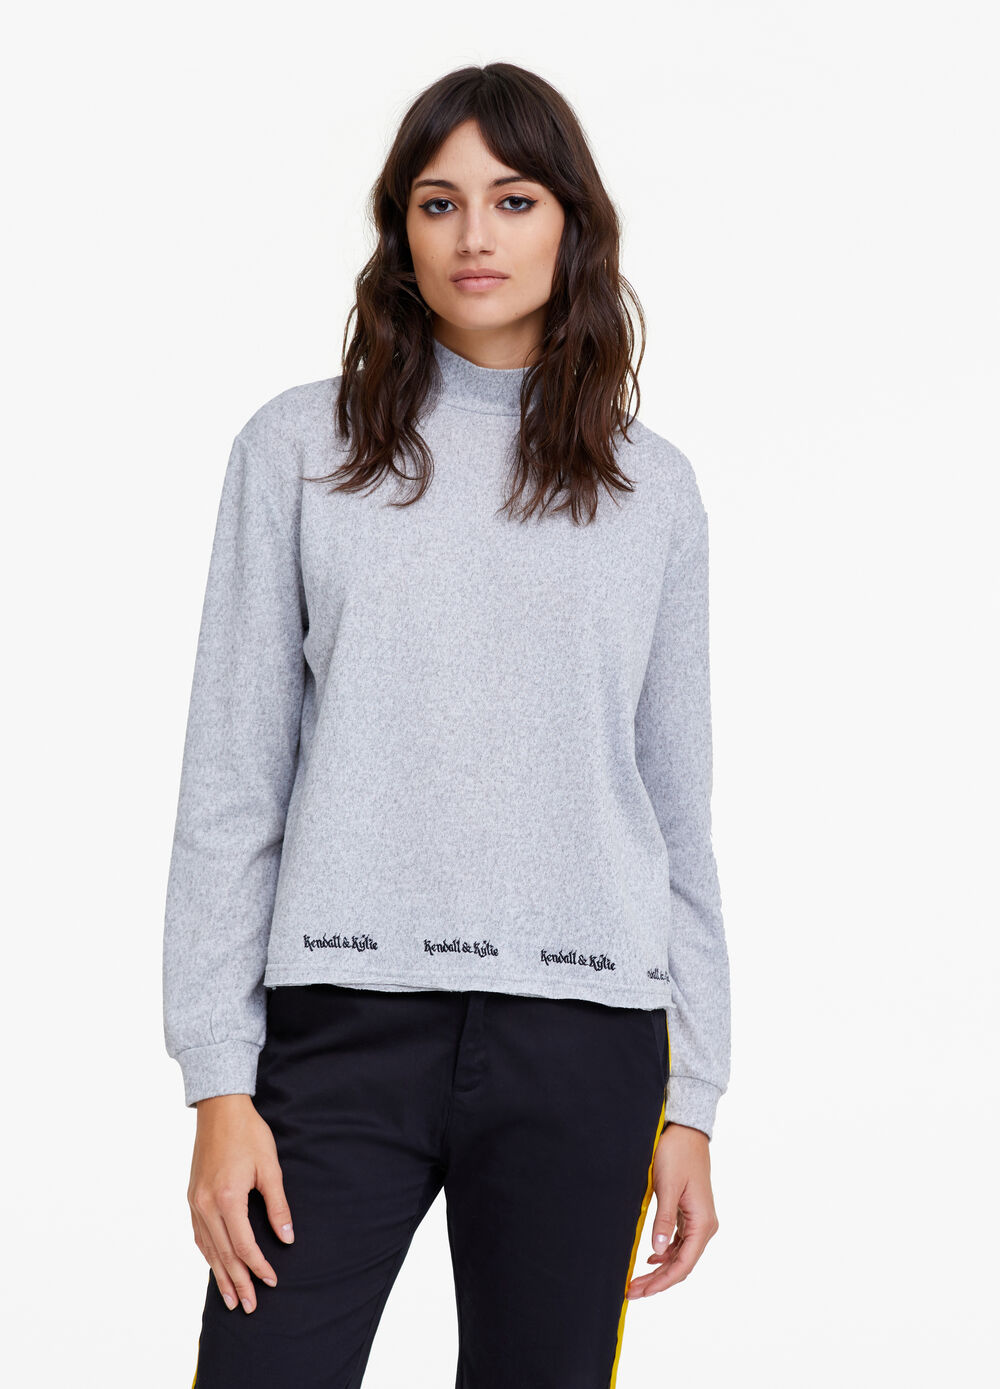 K+K for OVS sweatshirt with high neck